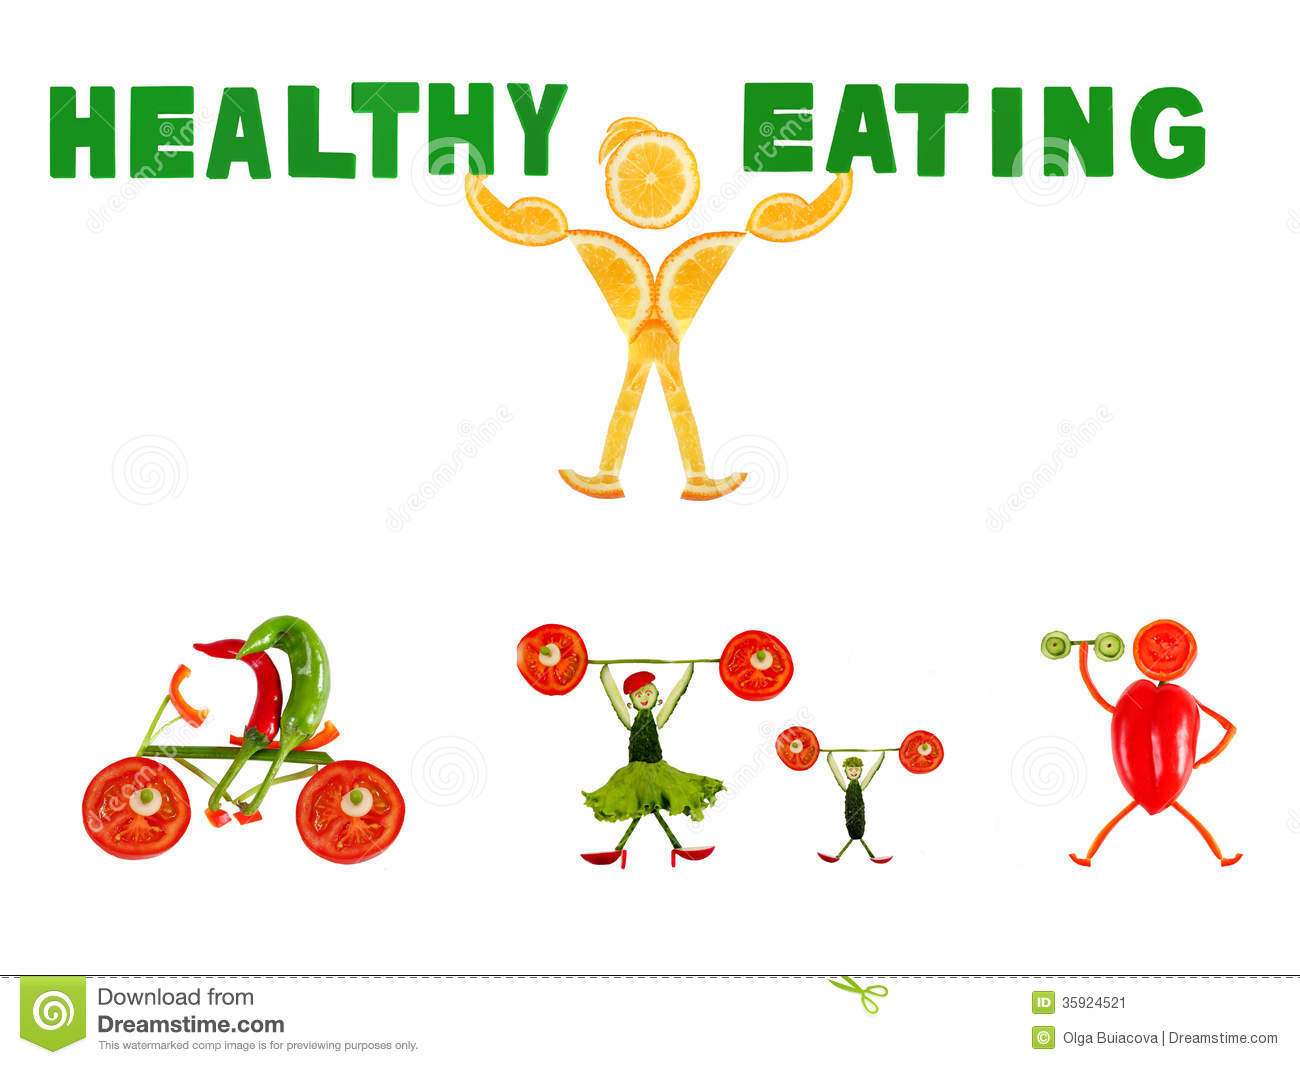 is eating only fruits and vegetables healthy the fruit of the spirit